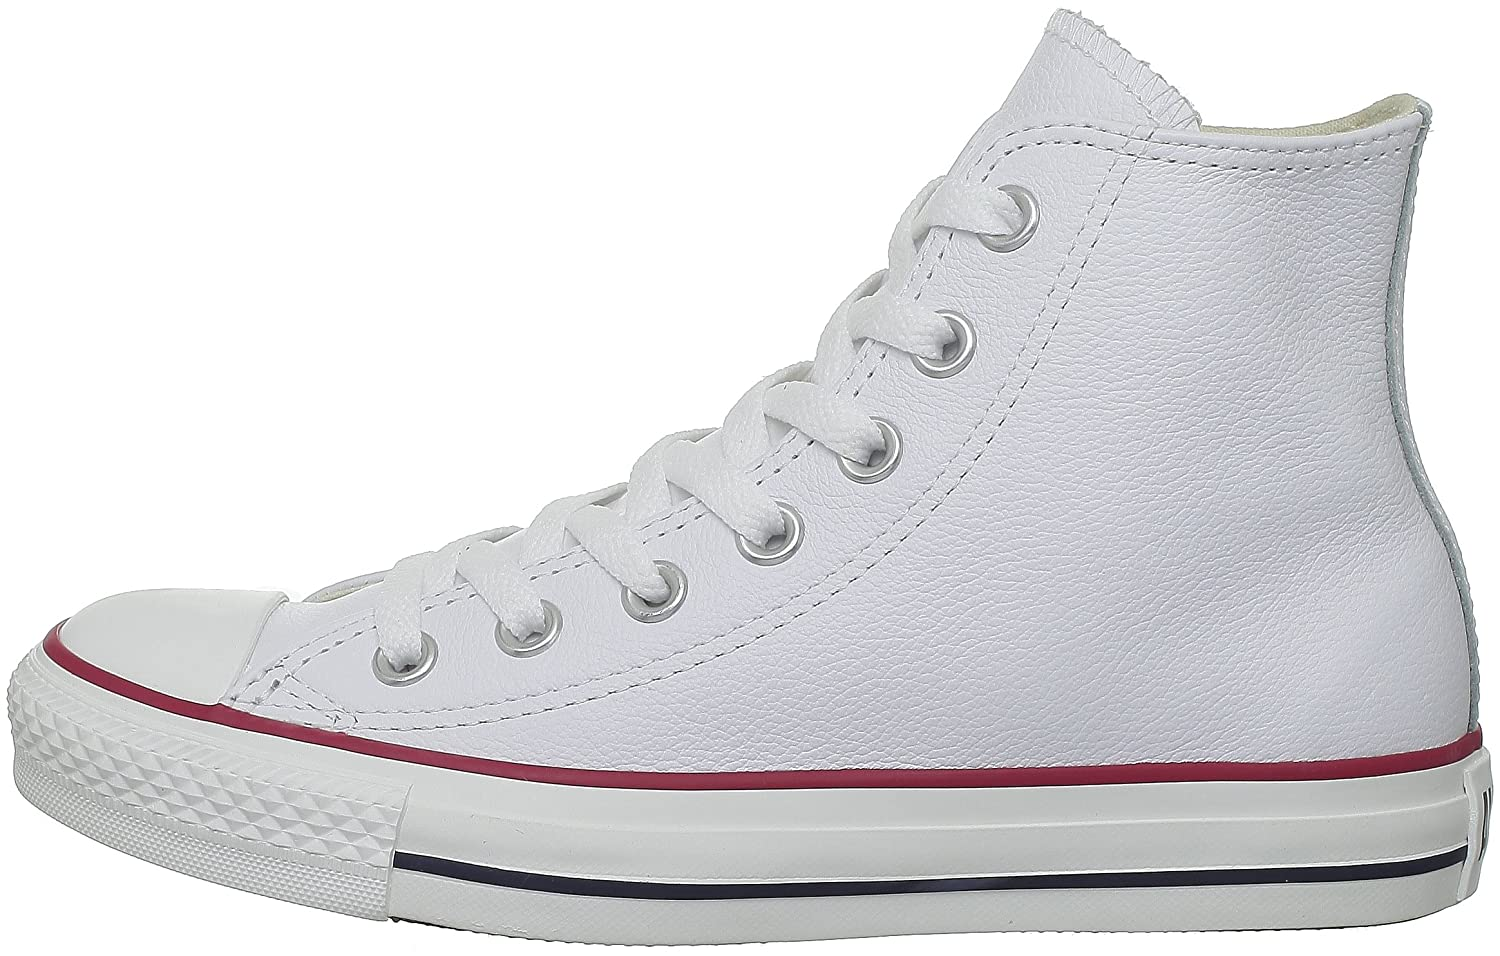 Converse Chuck Taylor All Star Leather High Top Sneaker B01GB4CD4E 5.5 D(M) US White